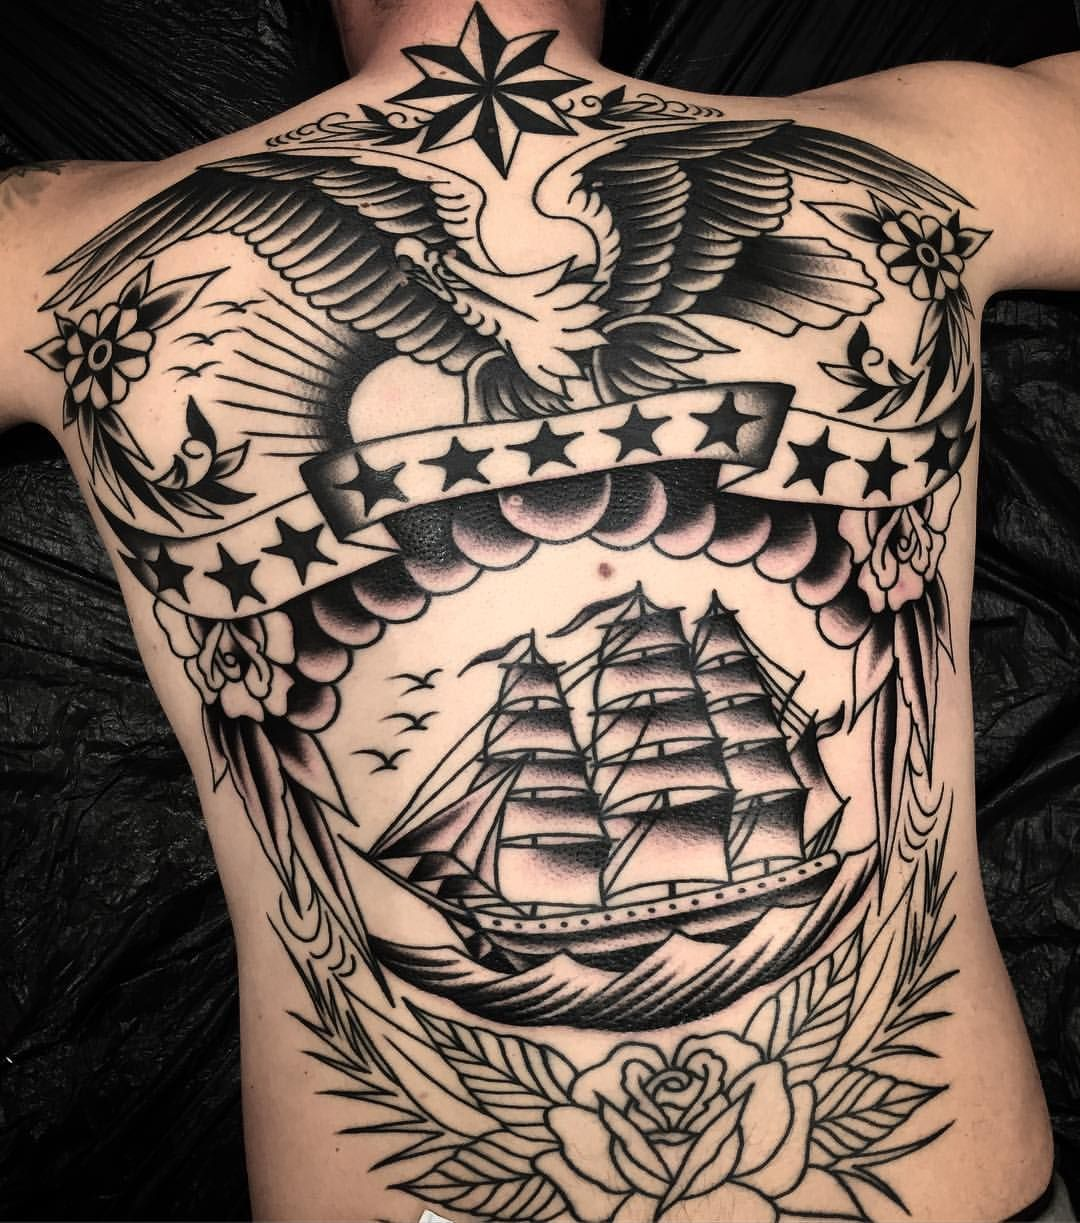 38+ Best Whang od tattoo price ideas in 2021